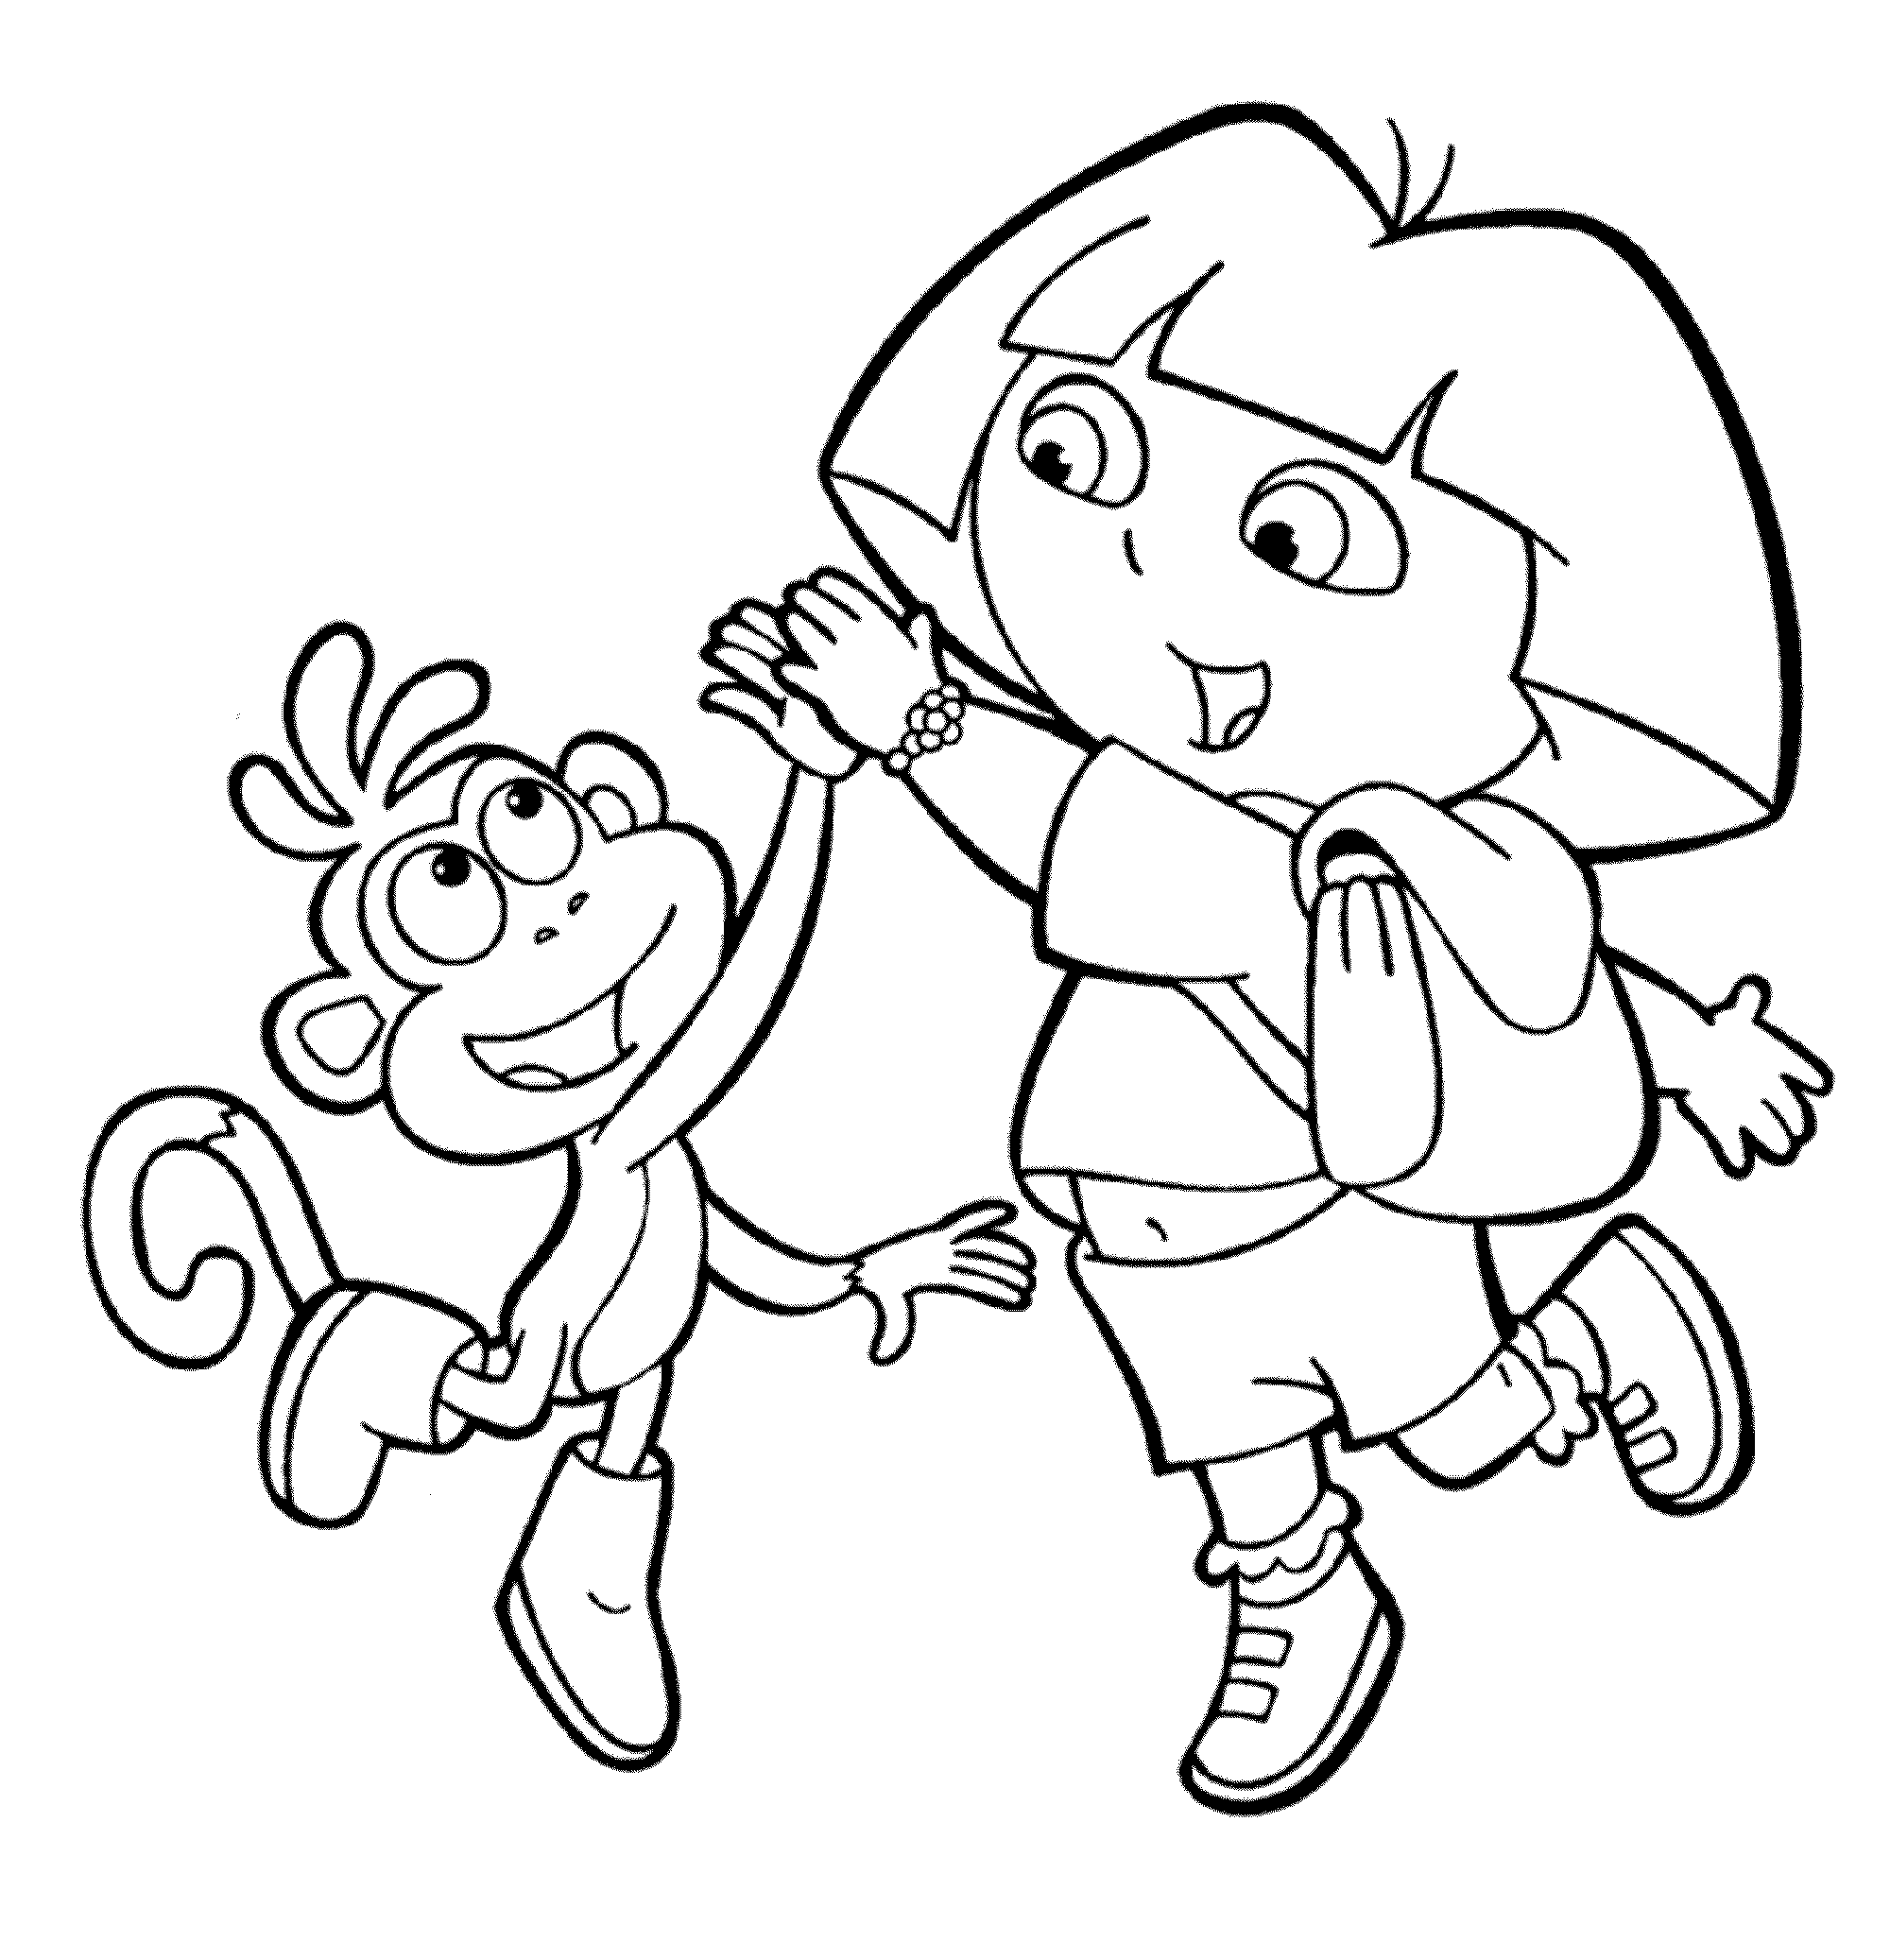 dora colouring pages printable dora the explorer coloring pages learn to coloring pages printable dora colouring